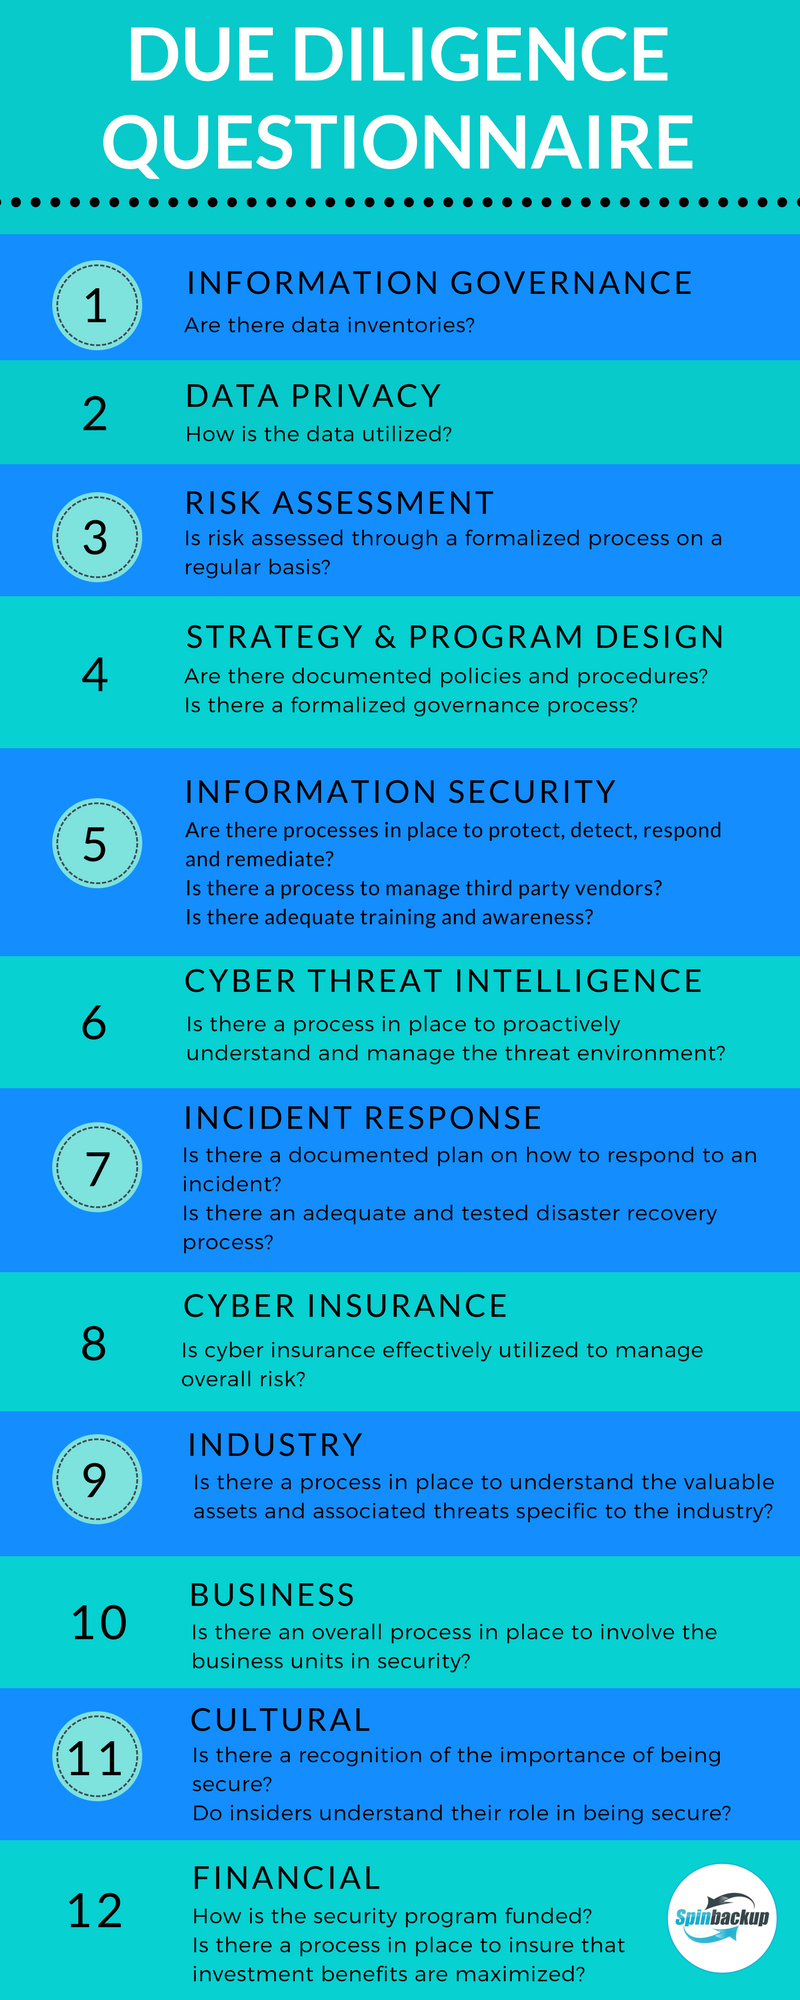 CYBERSECURITY DUE DILIGENCE QUESTIONNAIRE